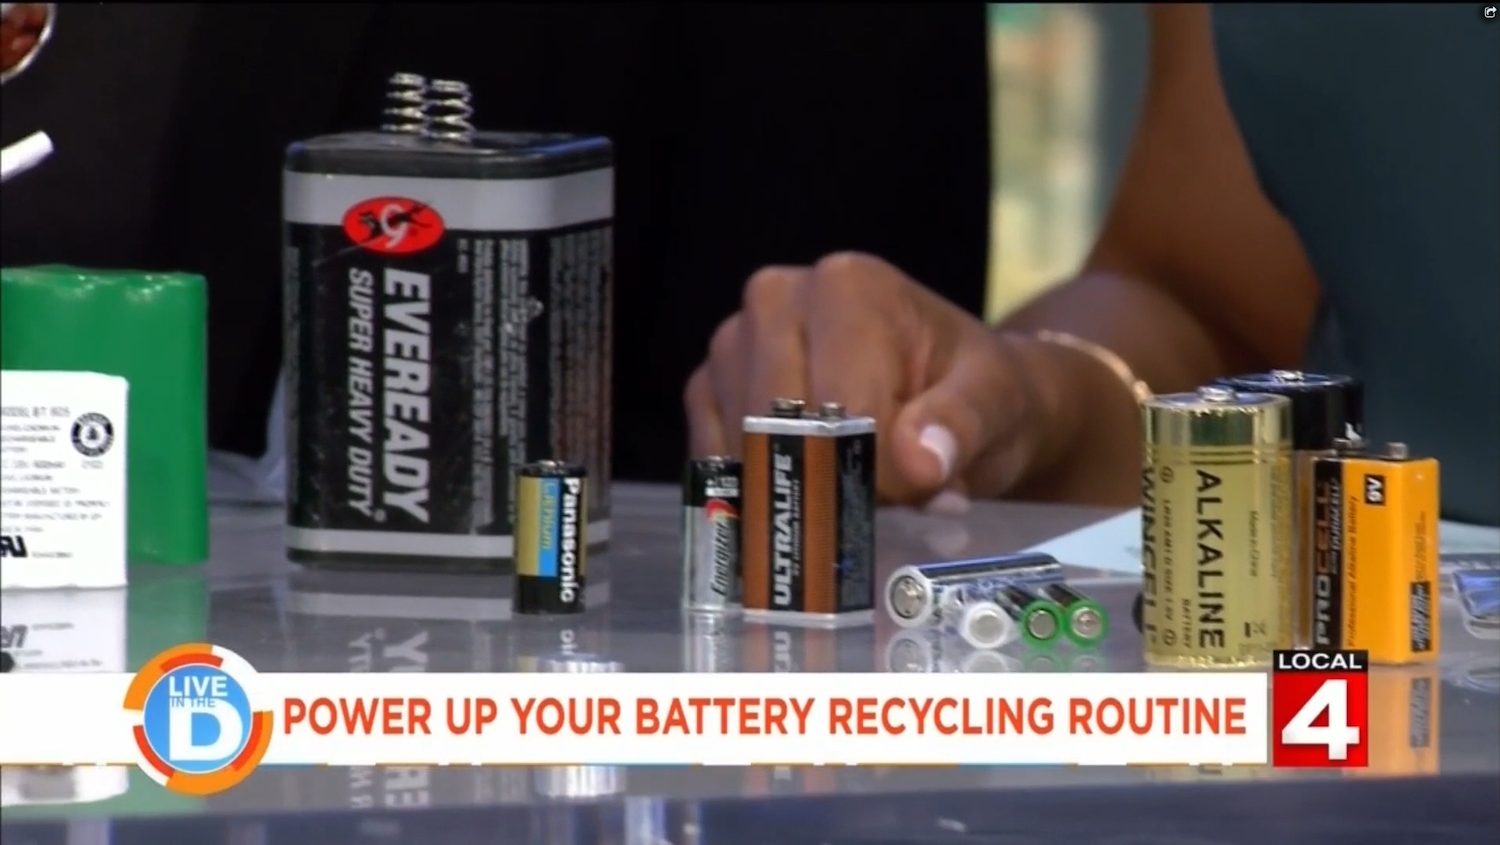 Learn the rules for recycling batteries